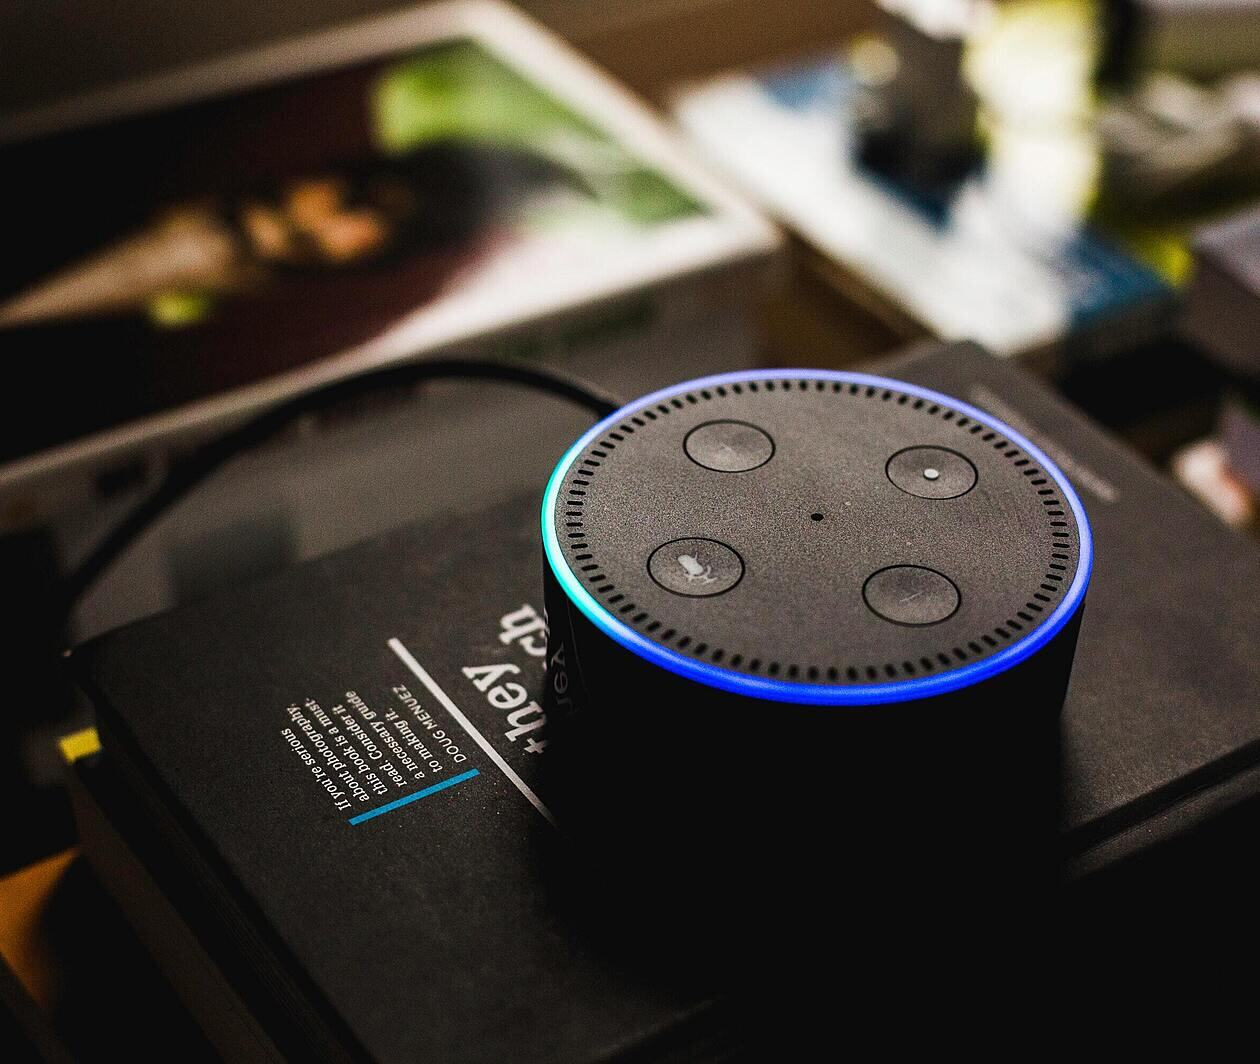 Get Started with a Voice Assistant: Developing Alexa Skills